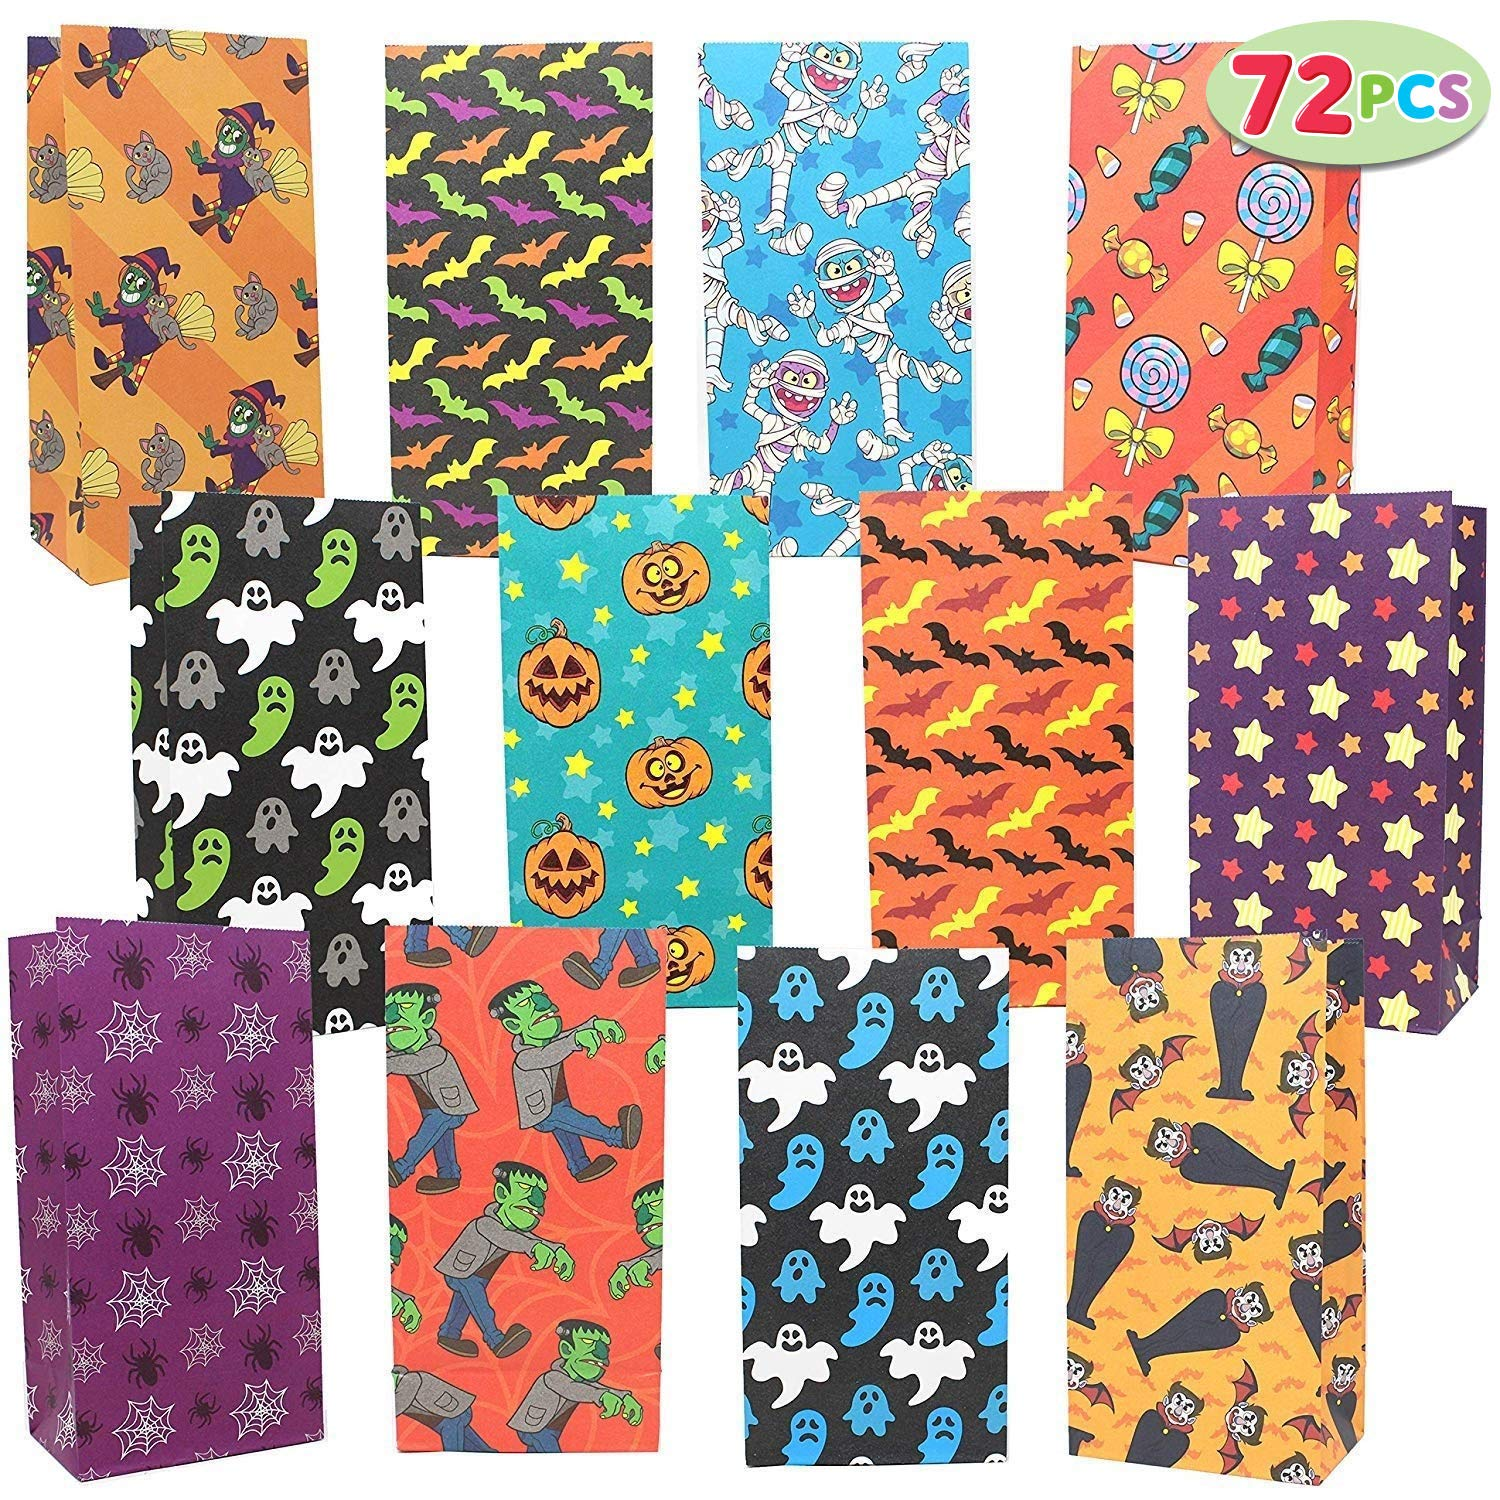 JOYIN 72 Pack of Halloween Bags; 12 Assorted Designs Paper Treat Bags for Classroom Treat Bags Halloween Party Favors, Trick or Treating Candy Bags, ...